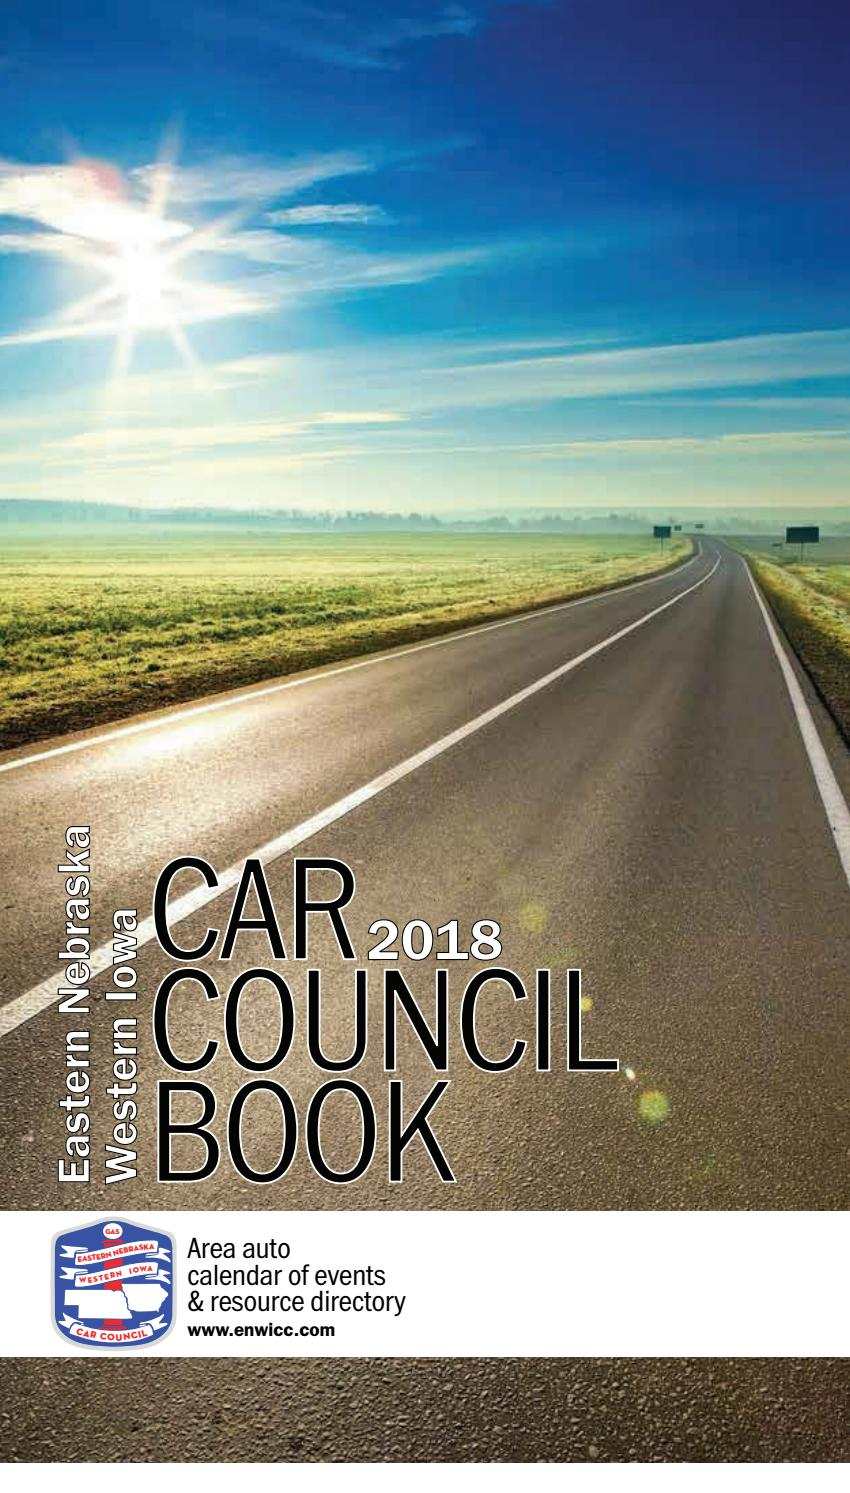 Eastern Nebraska Western Iowa Car Council Book 2018 By Suburban Home C2 Bb 1993 Ford Mustang Convertible Engine Partment Fuse Box Newspapers Issuu